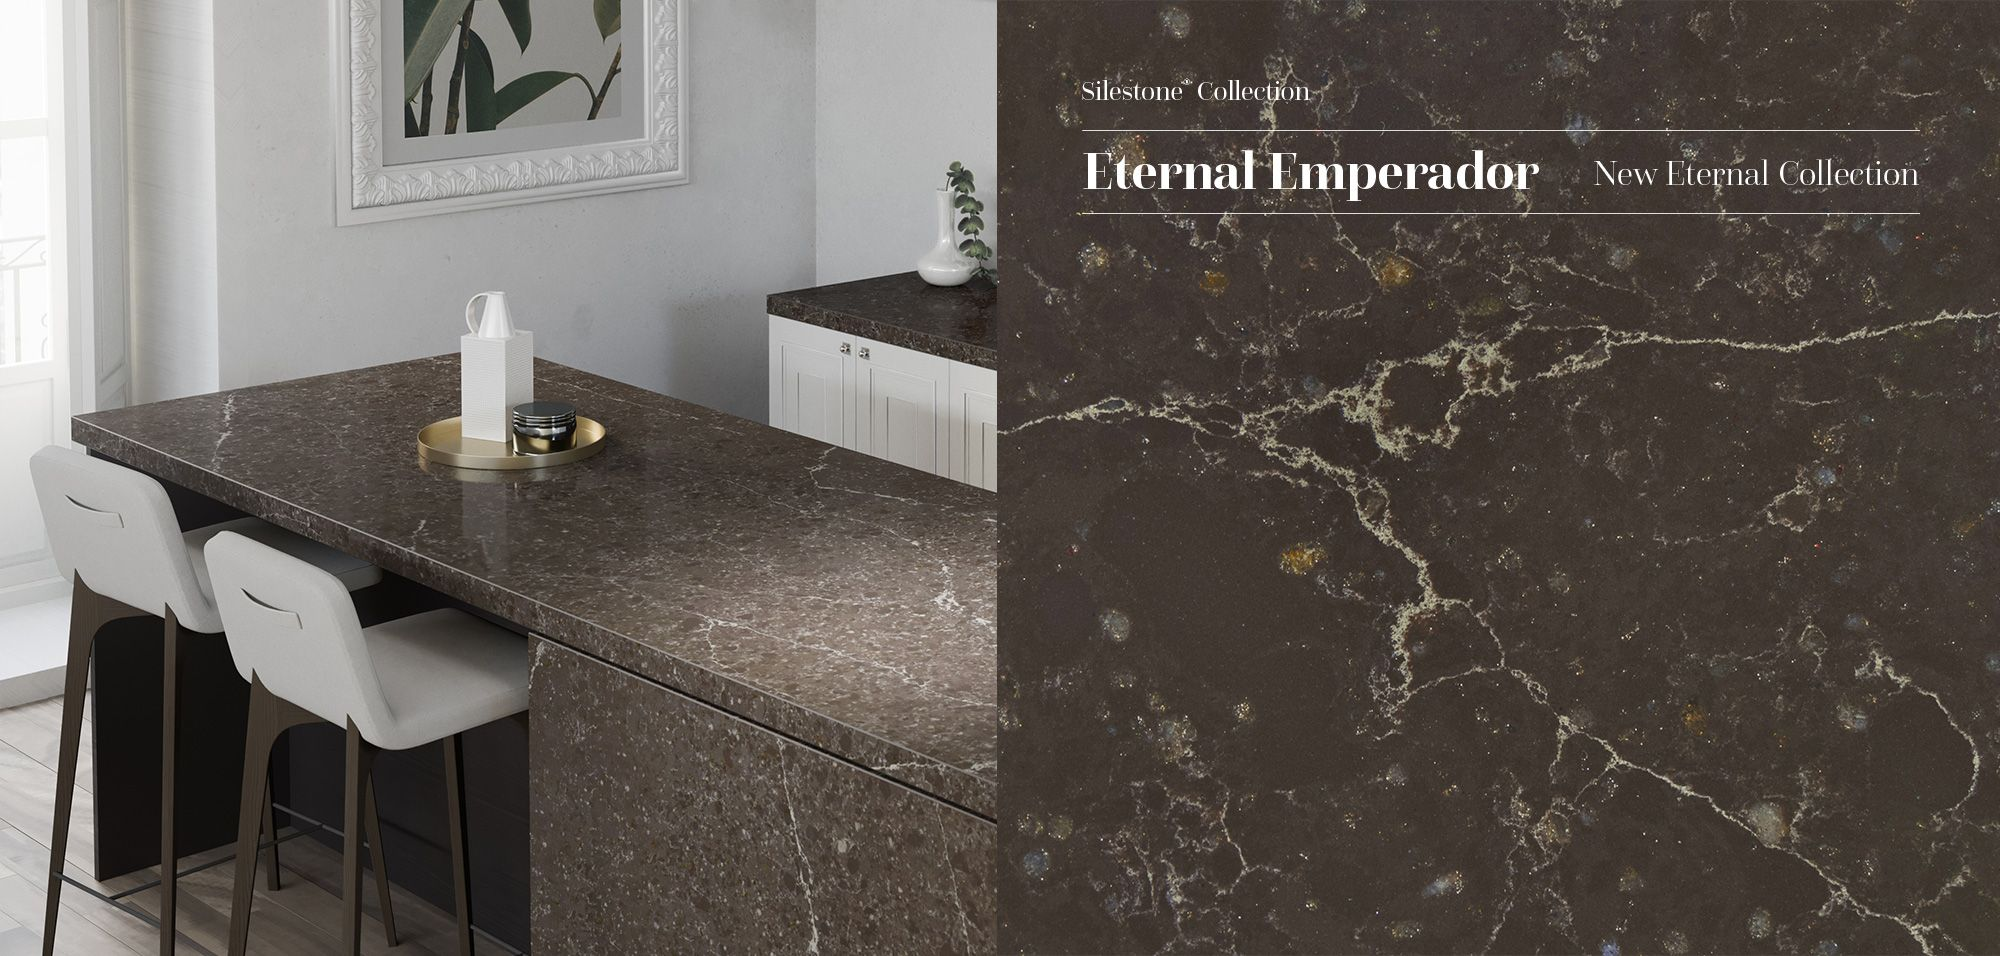 New Silestone Eternal Emperador Is Tradition And Elegance